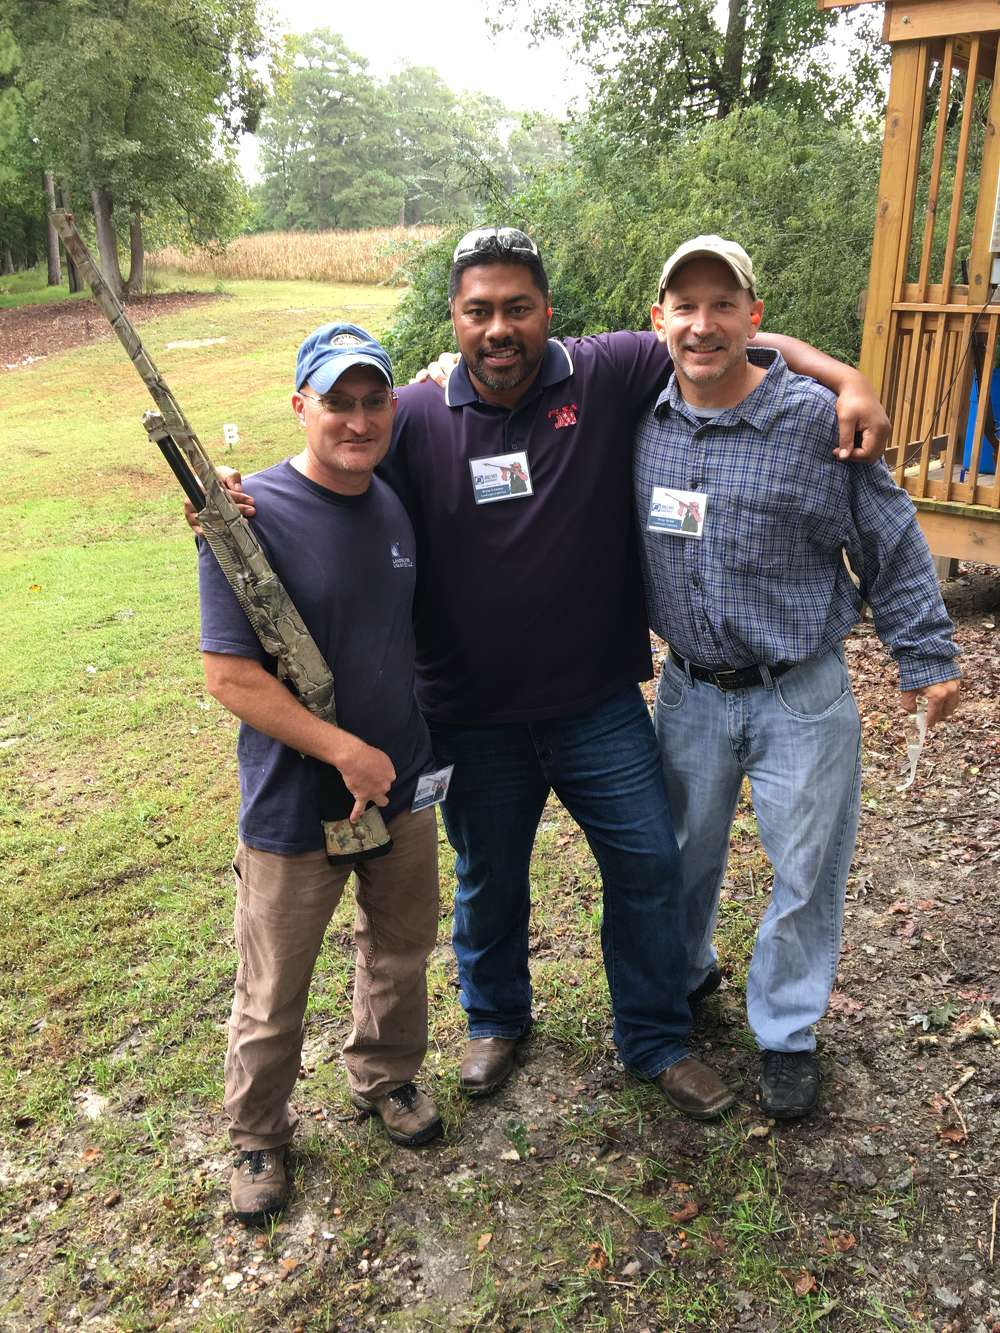 Dana Grode, Brian Leavma and Wray Dybal,  all of Landscapes Unlimited in Fuquay-Varina, N.C., enjoy a day out of the office.